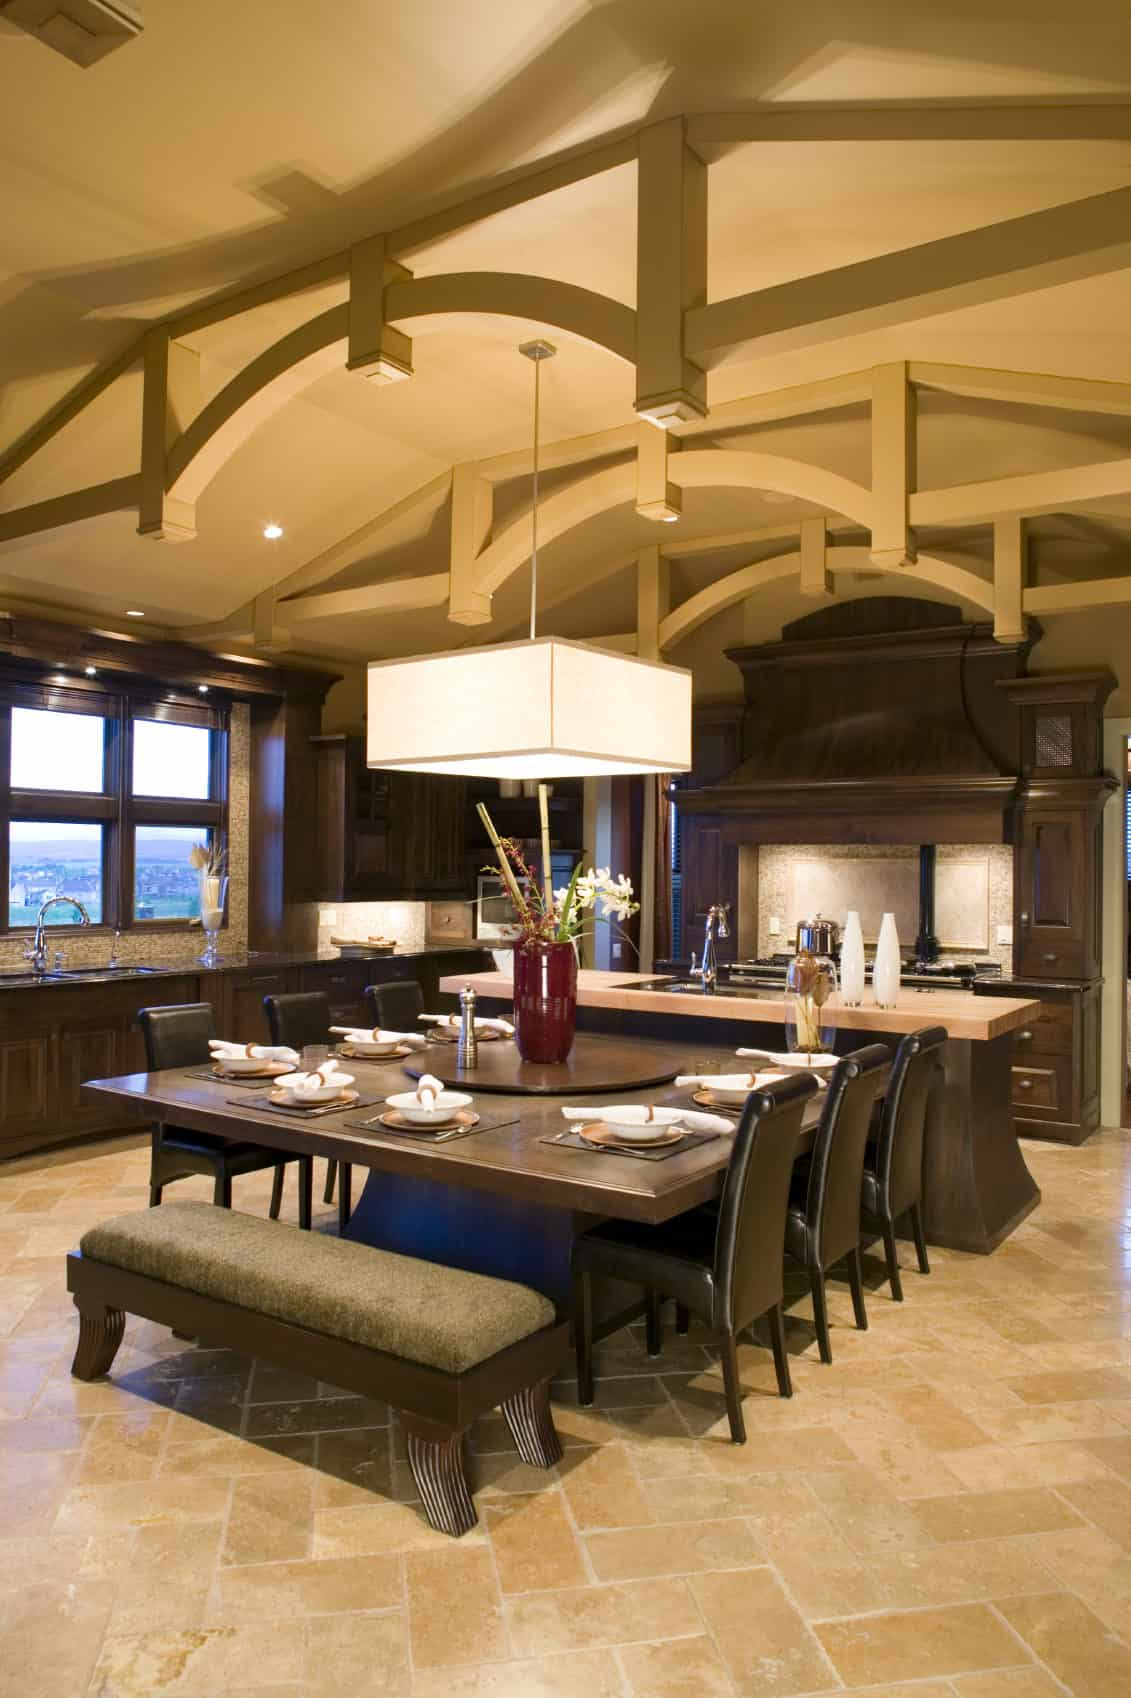 From the elaborate ceiling fixtures to the large dining table in the center, this luxury kitchen makes one wonder if they are dining at home or at an expensive five-star restaurant. The low hanging, humongous box-shaped lamp adds more flamboyancy to the place.